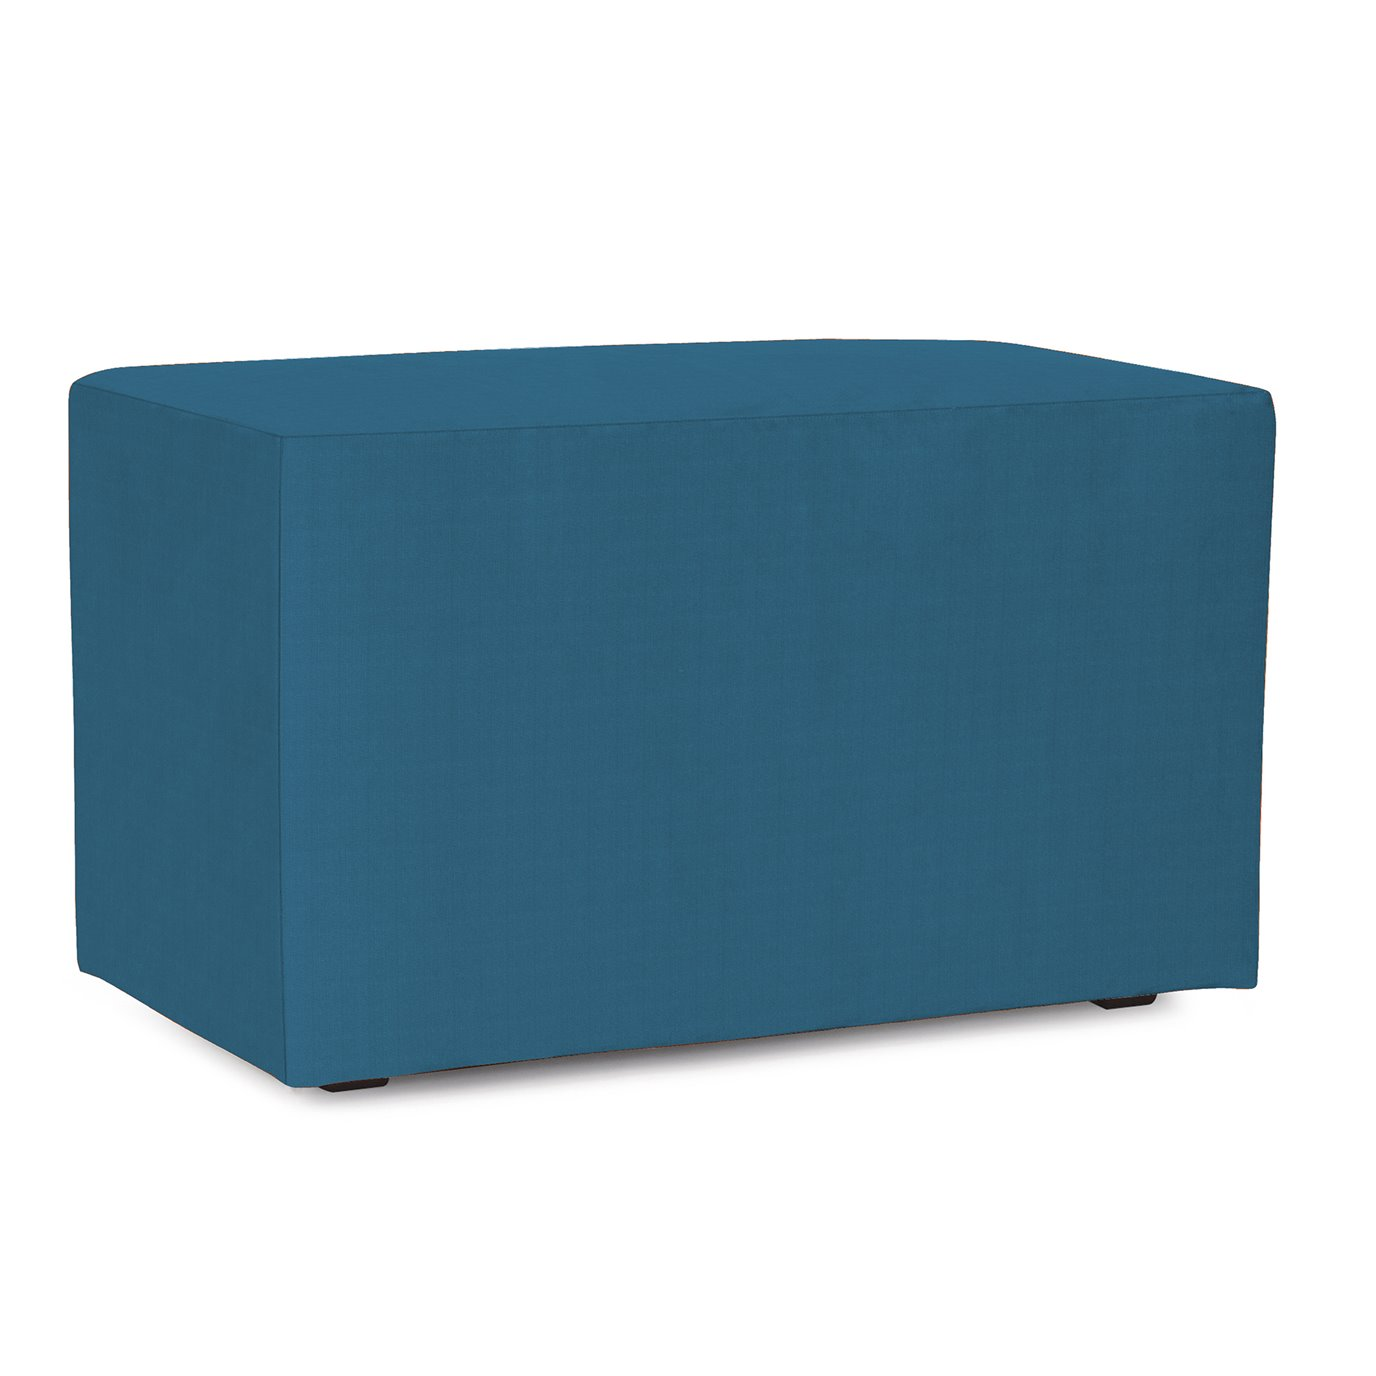 Howard Elliott Universal Bench Cover Sunbrella Outdoor Seascape Turquoise - Cover Only, Base Not Included